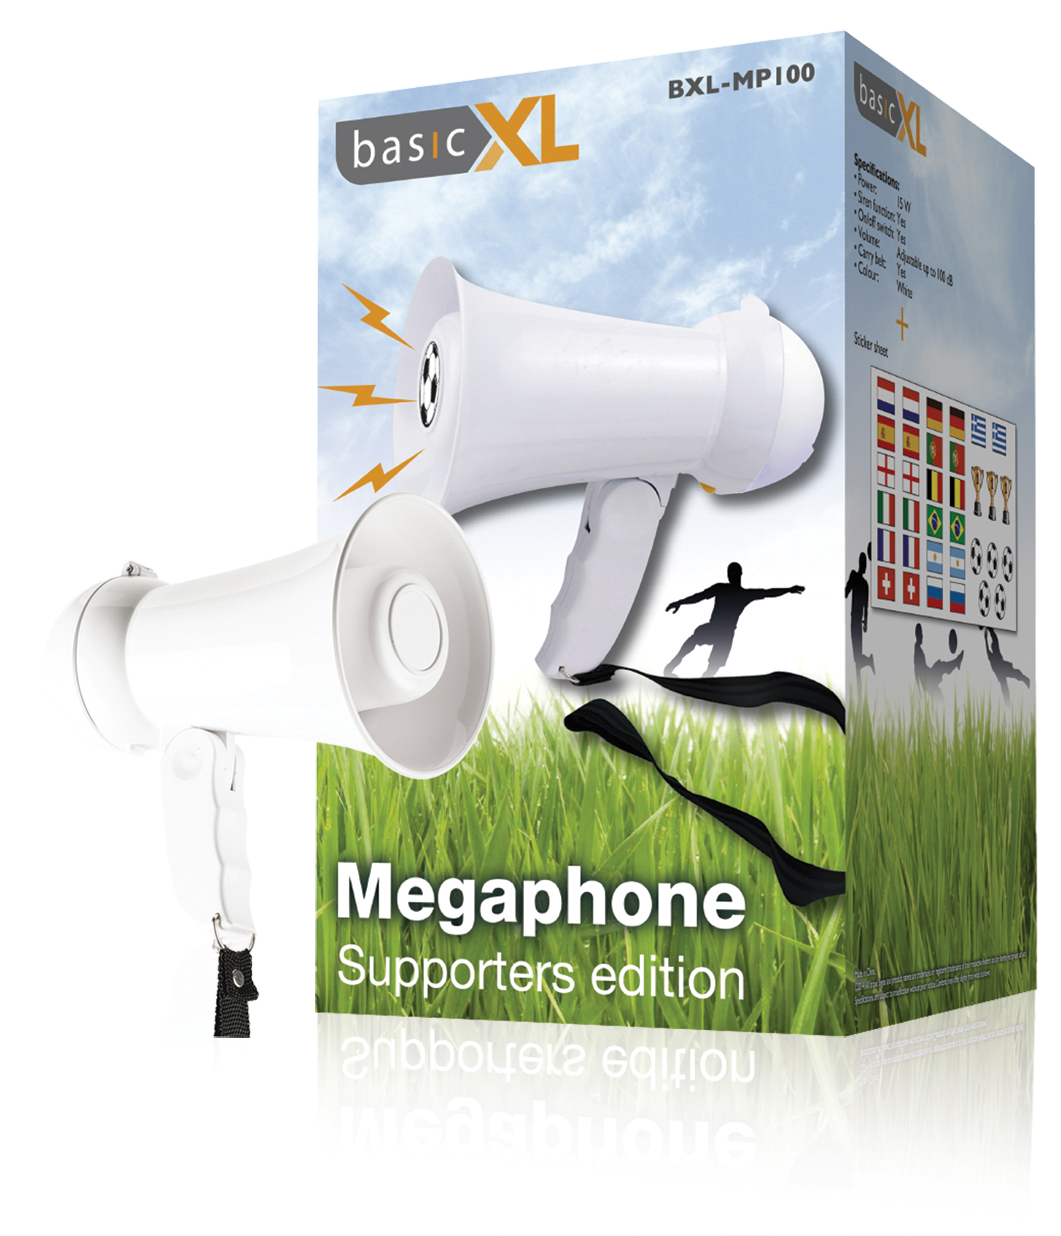 BasicXL Megaphone Edition Balloons Sports Ideal To Encourage Your Team Works Battery